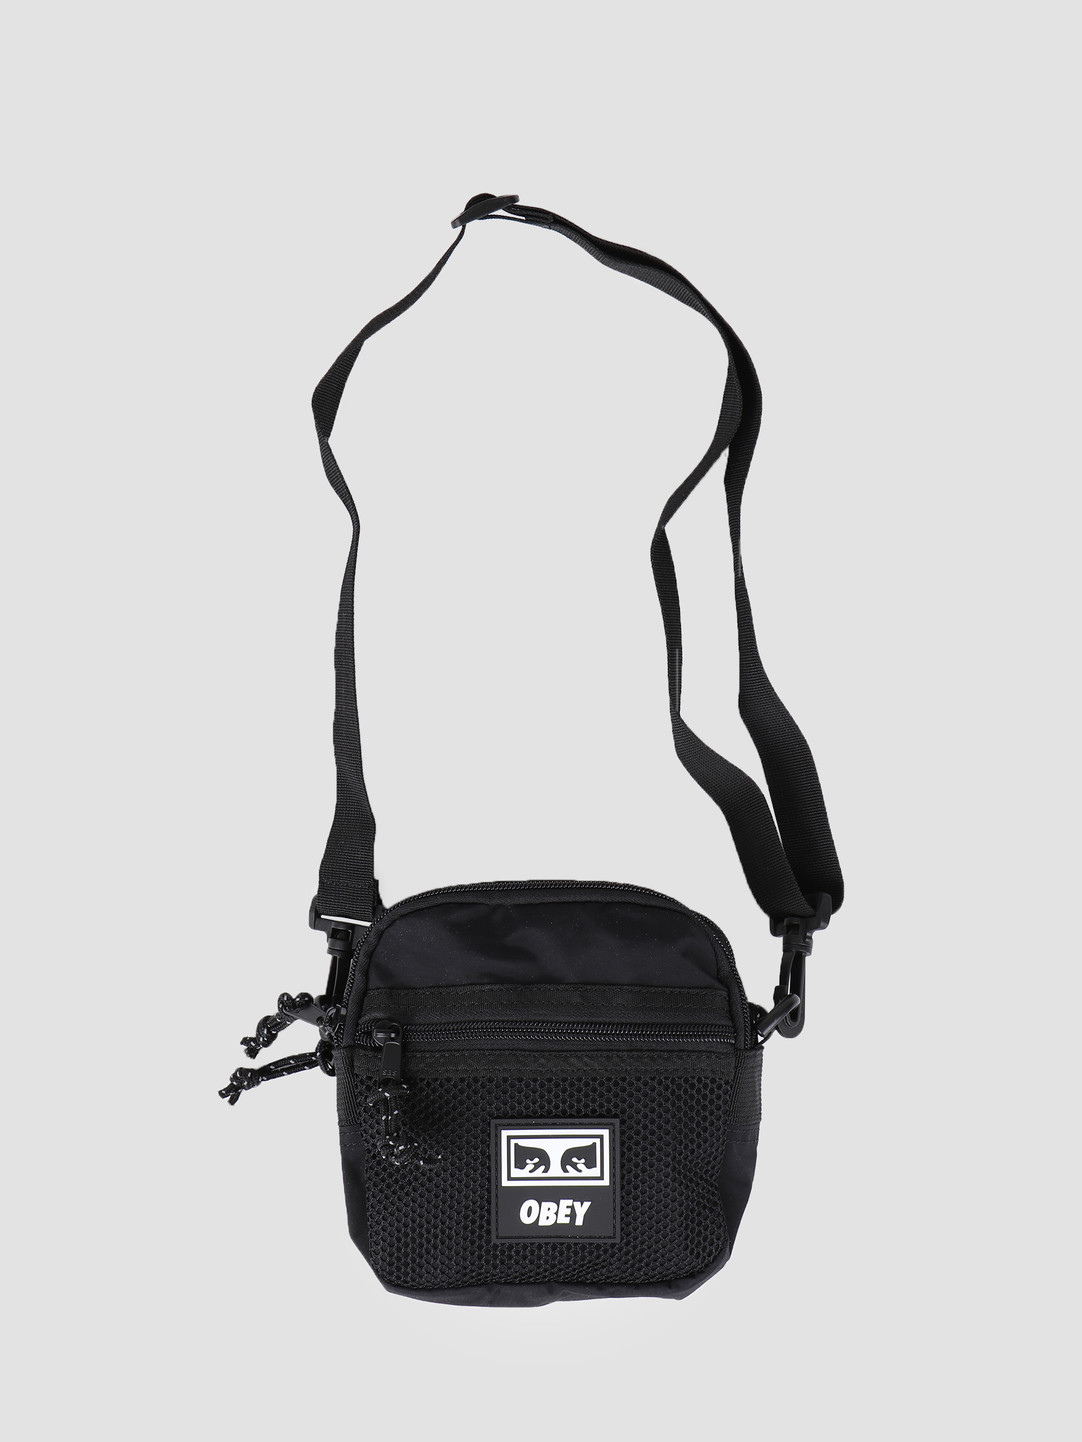 Obey Obey Conditions Traveler Bag BLK 100010109